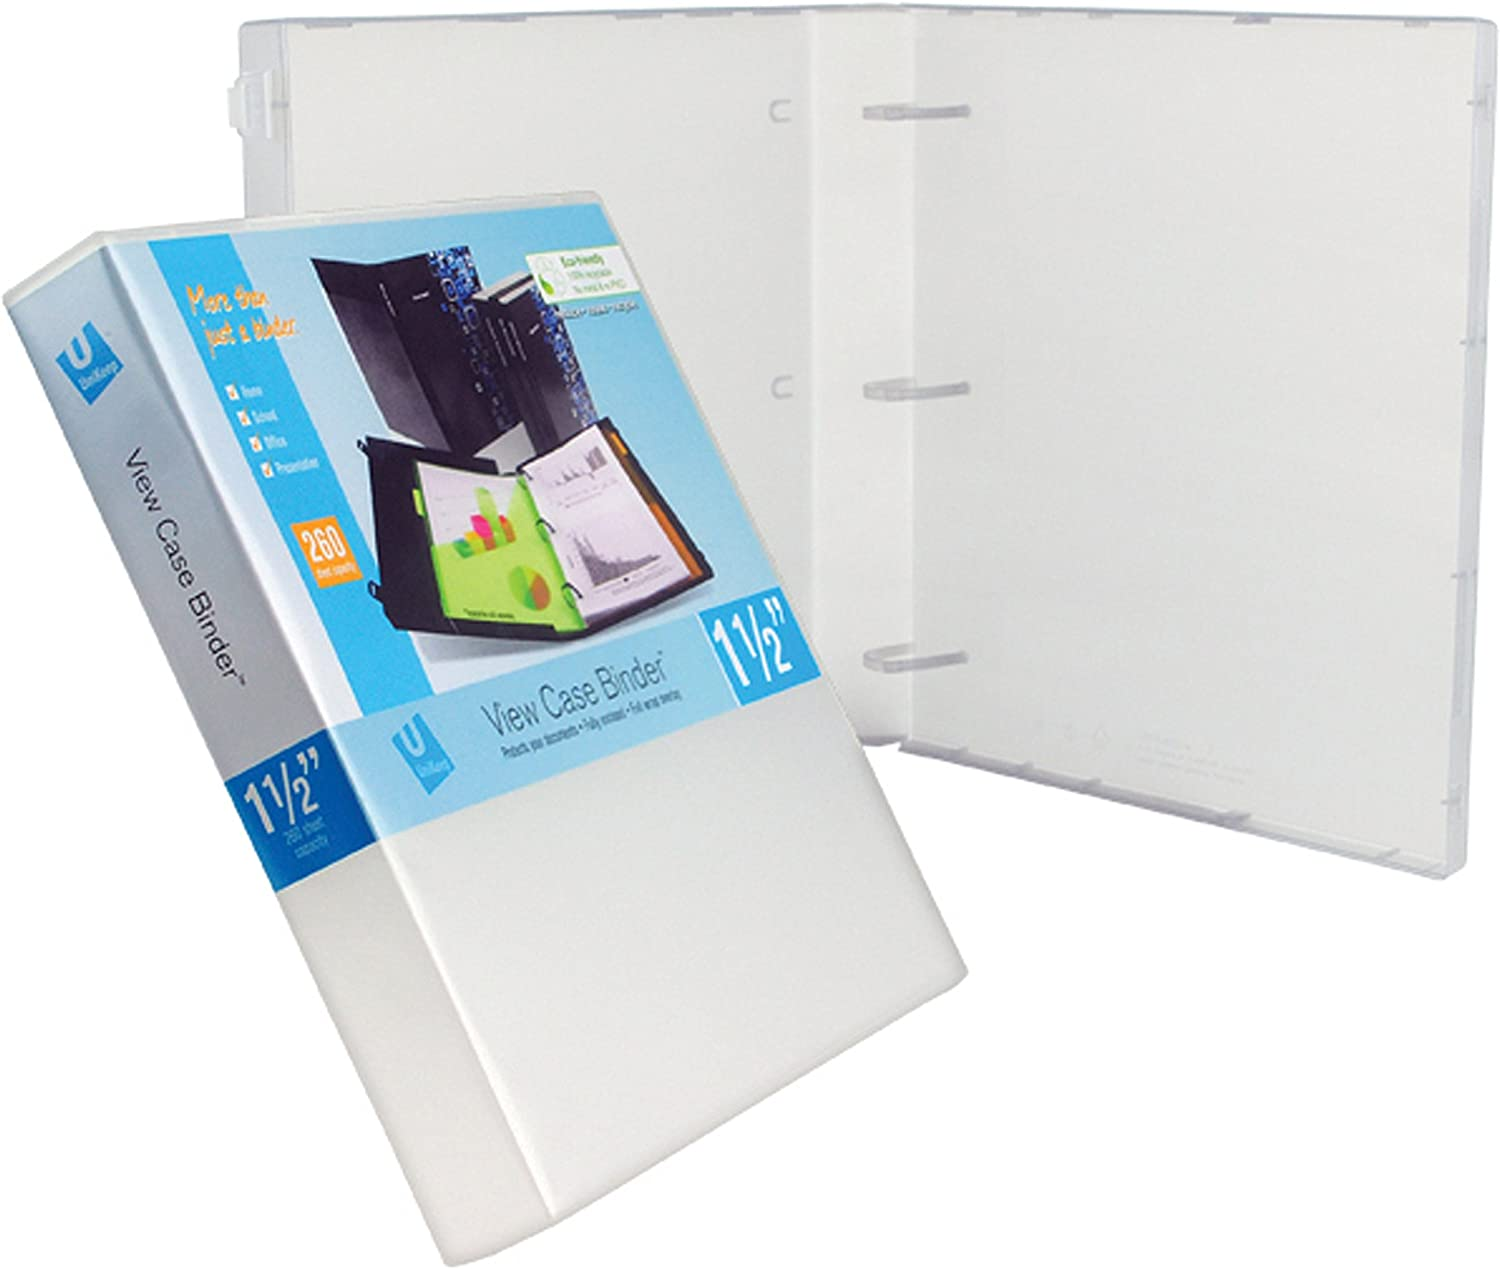 UniKeep shipfree 3 Ring Binder - Clear Spine Case W Inch 1.5 Clearance SALE Limited time